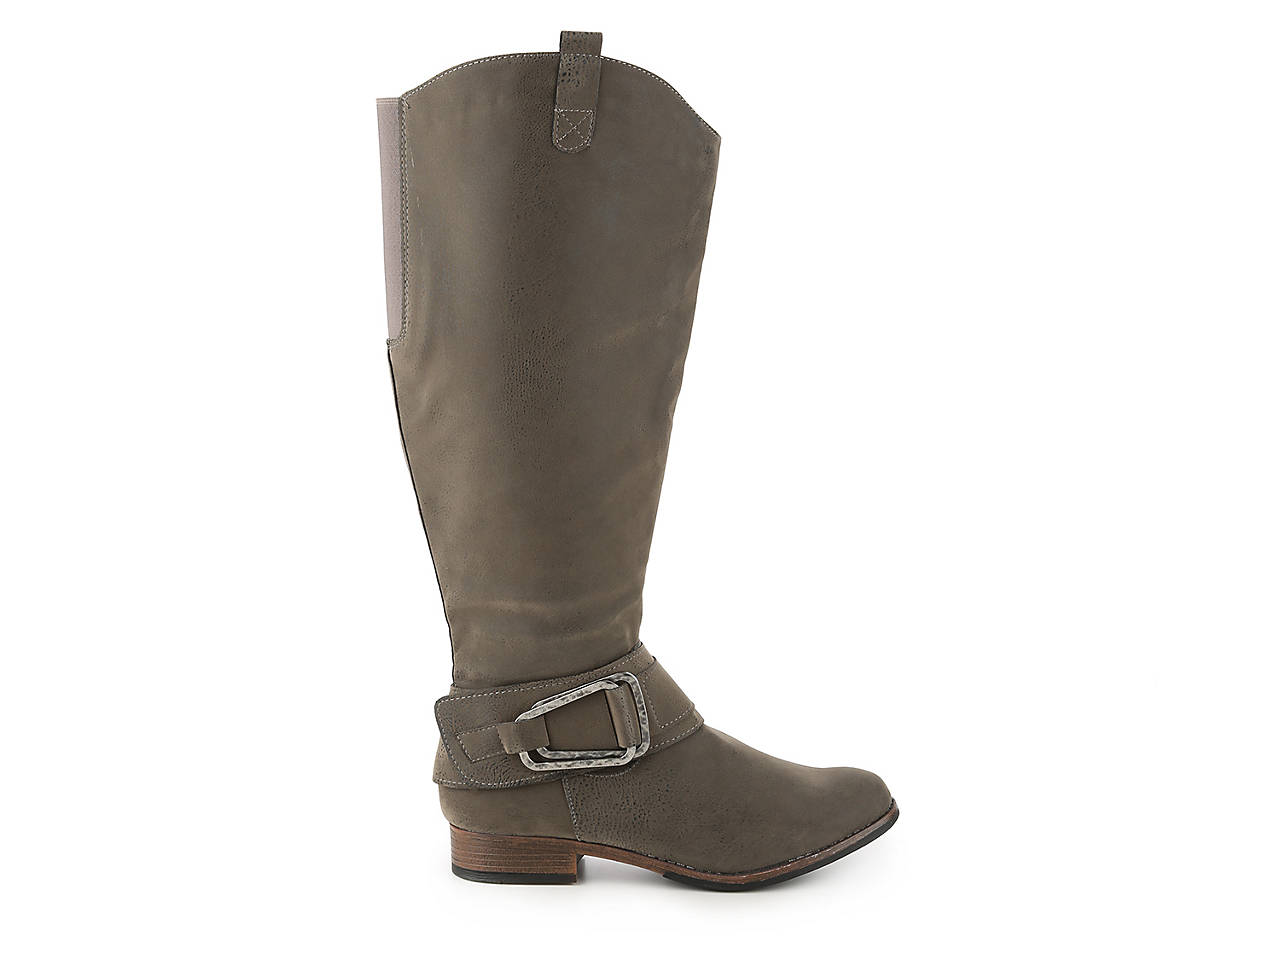 64184071e037 Levity Bonita Wide Calf Riding Boot Women s Shoes